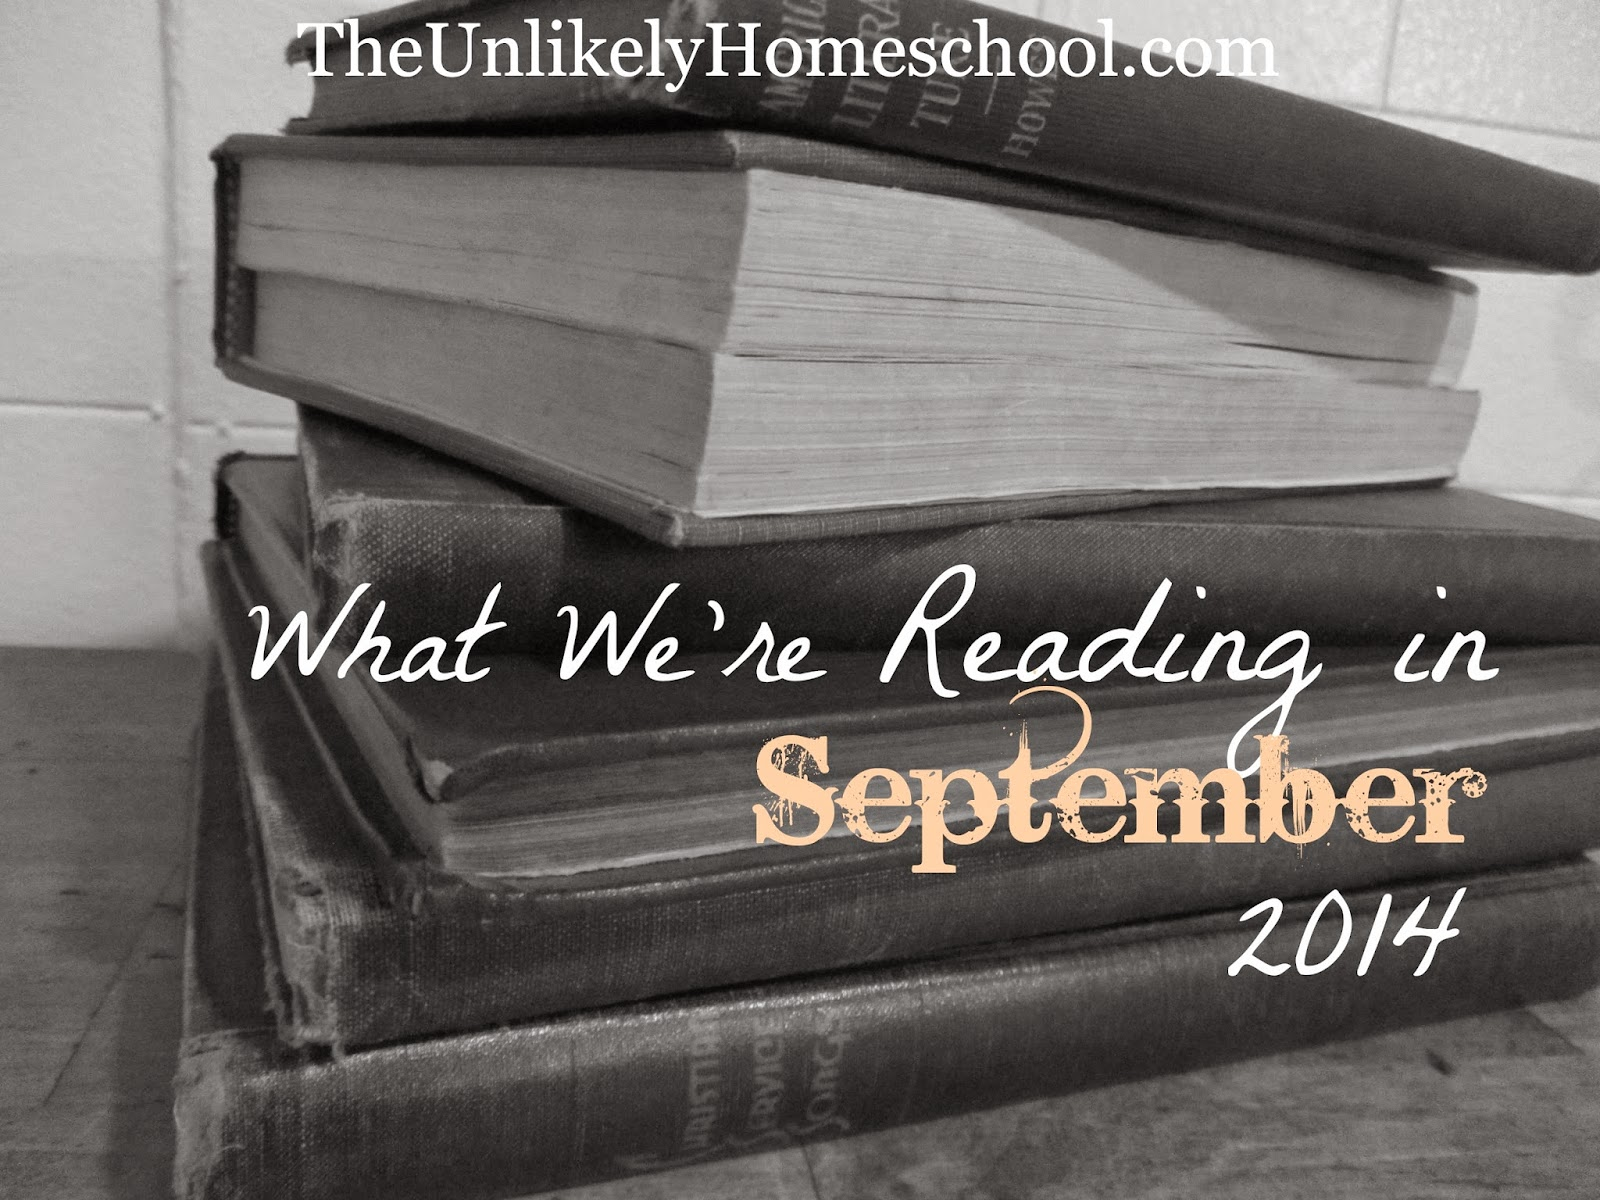 What We're Reading in September 2014 (Homeschool book choices for mom and kids in 6th, 3rd, 2nd, and K) The Unlikely Homeschool